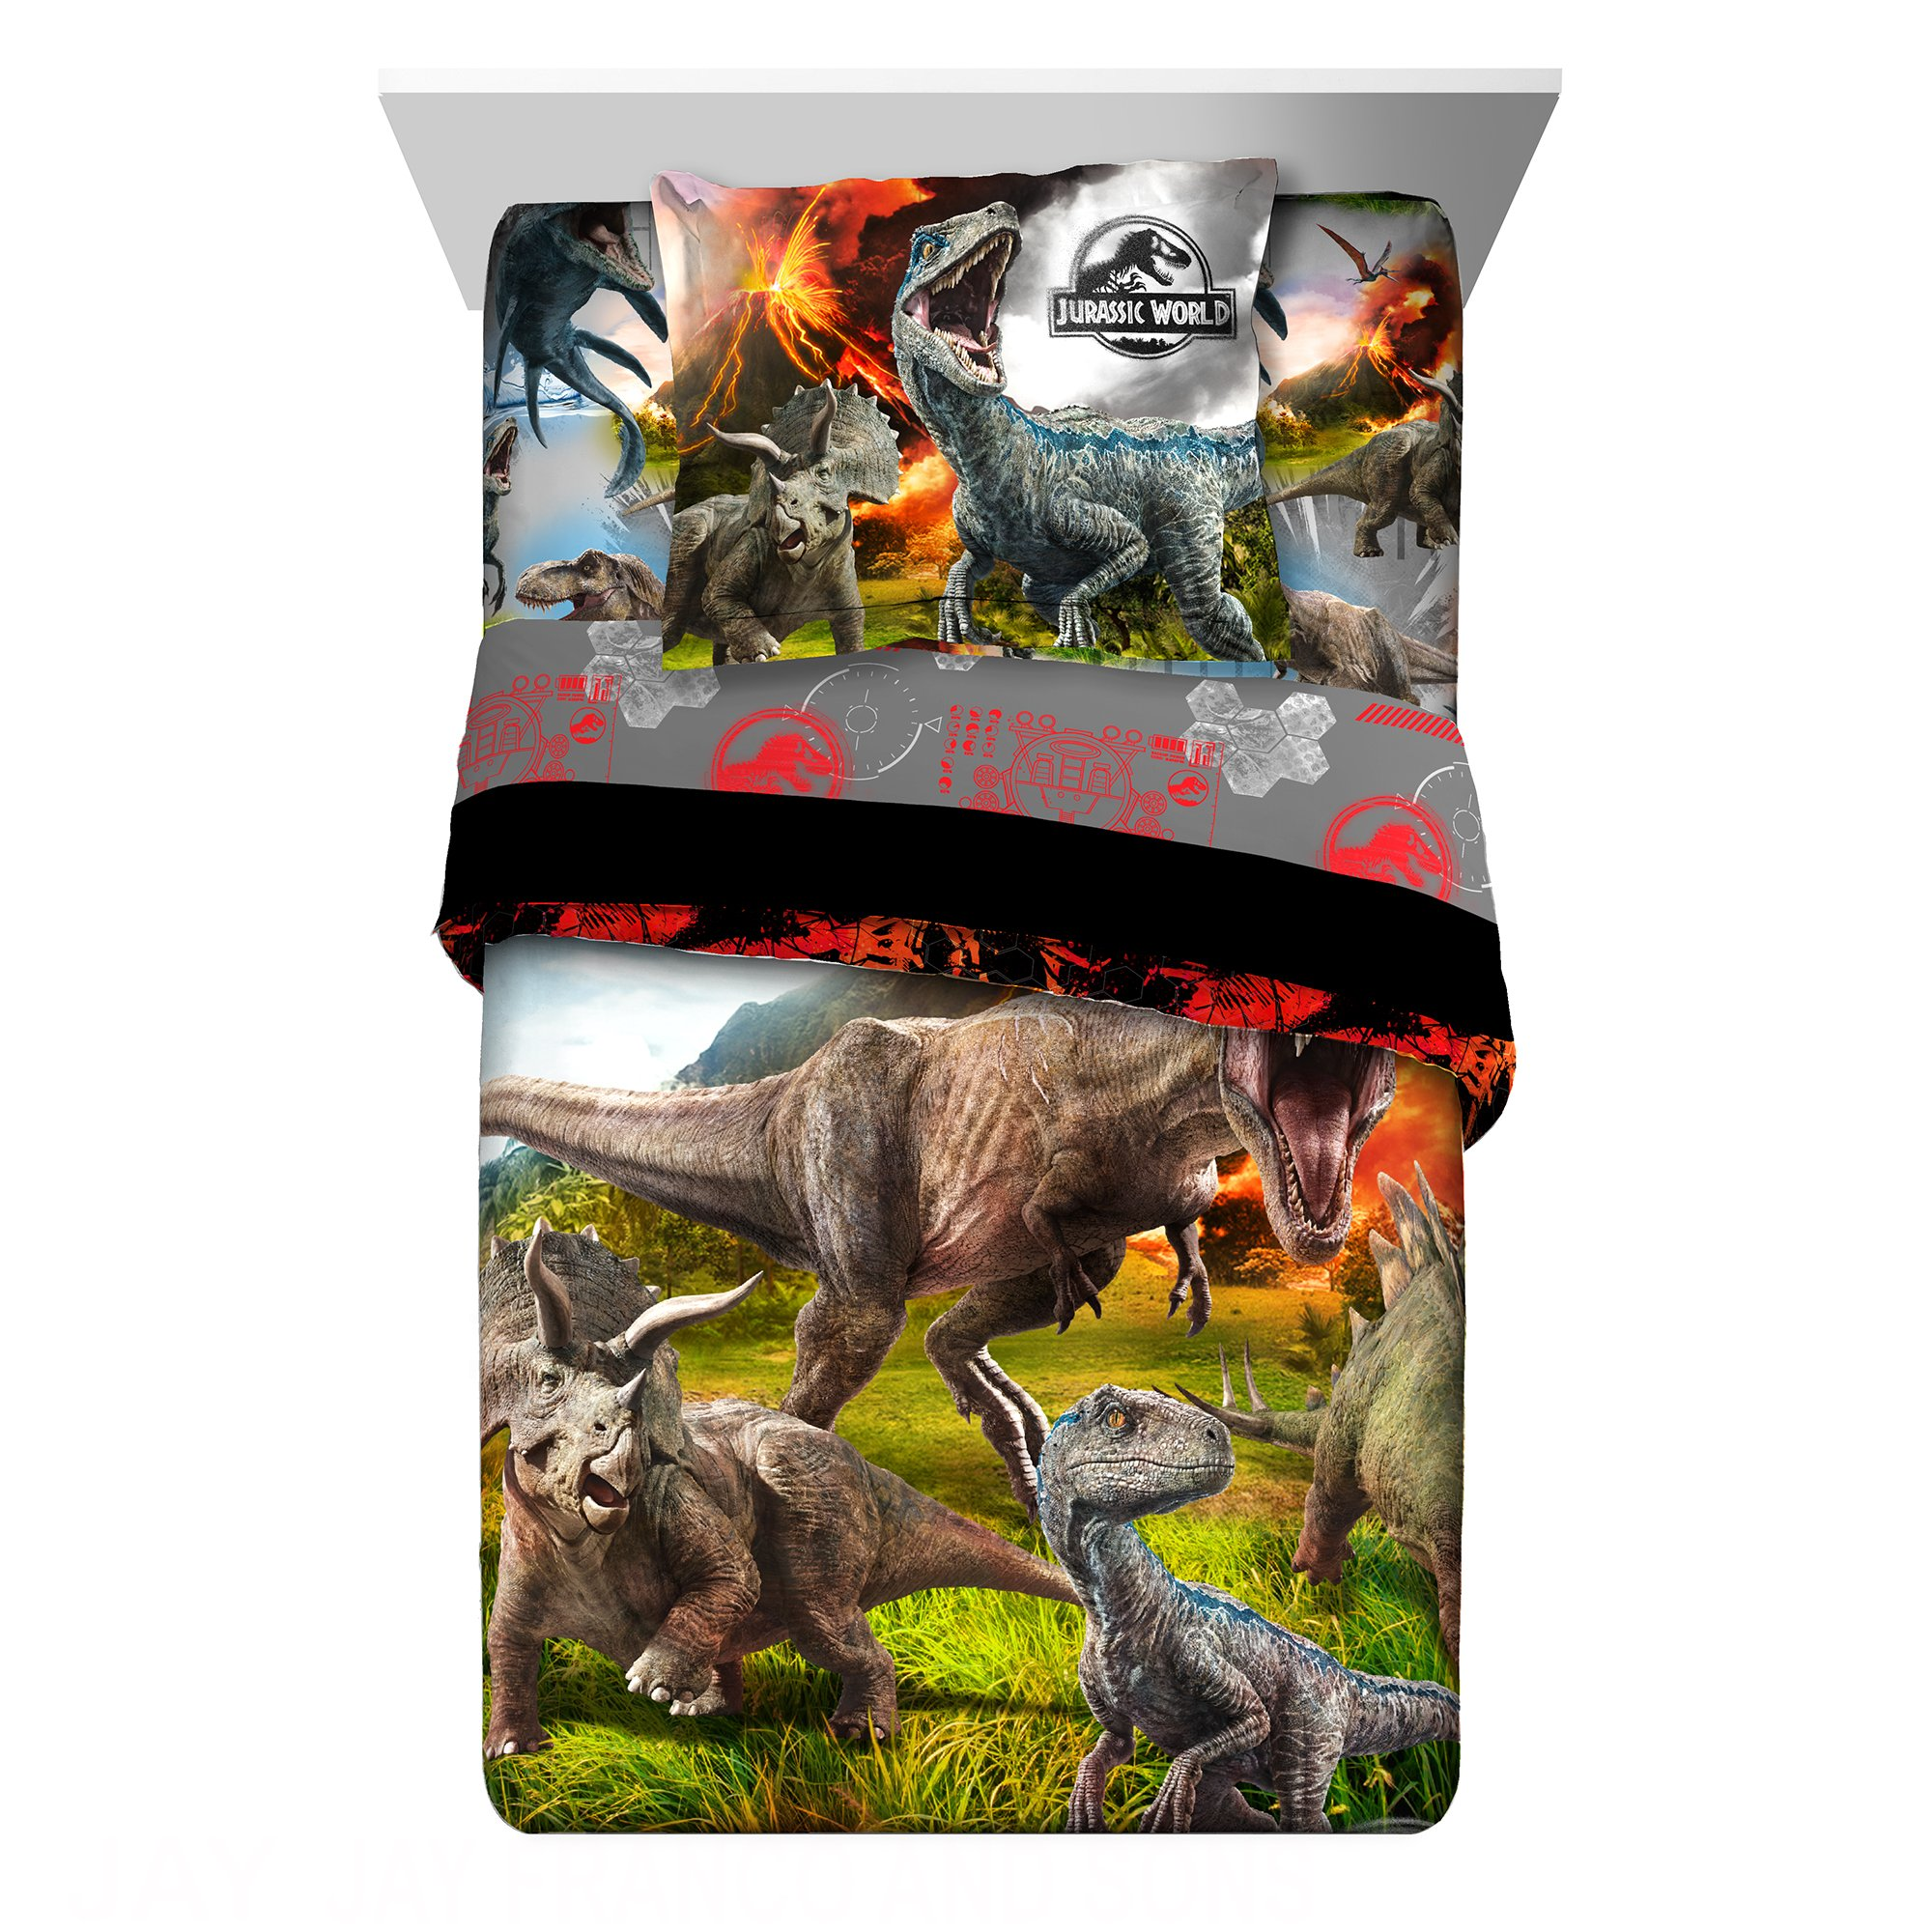 Jurassic World 2 New 2018 6-Piece Full Comforter and Sheet Set Bedding Collection with Blankets, Pillowcases and Sham